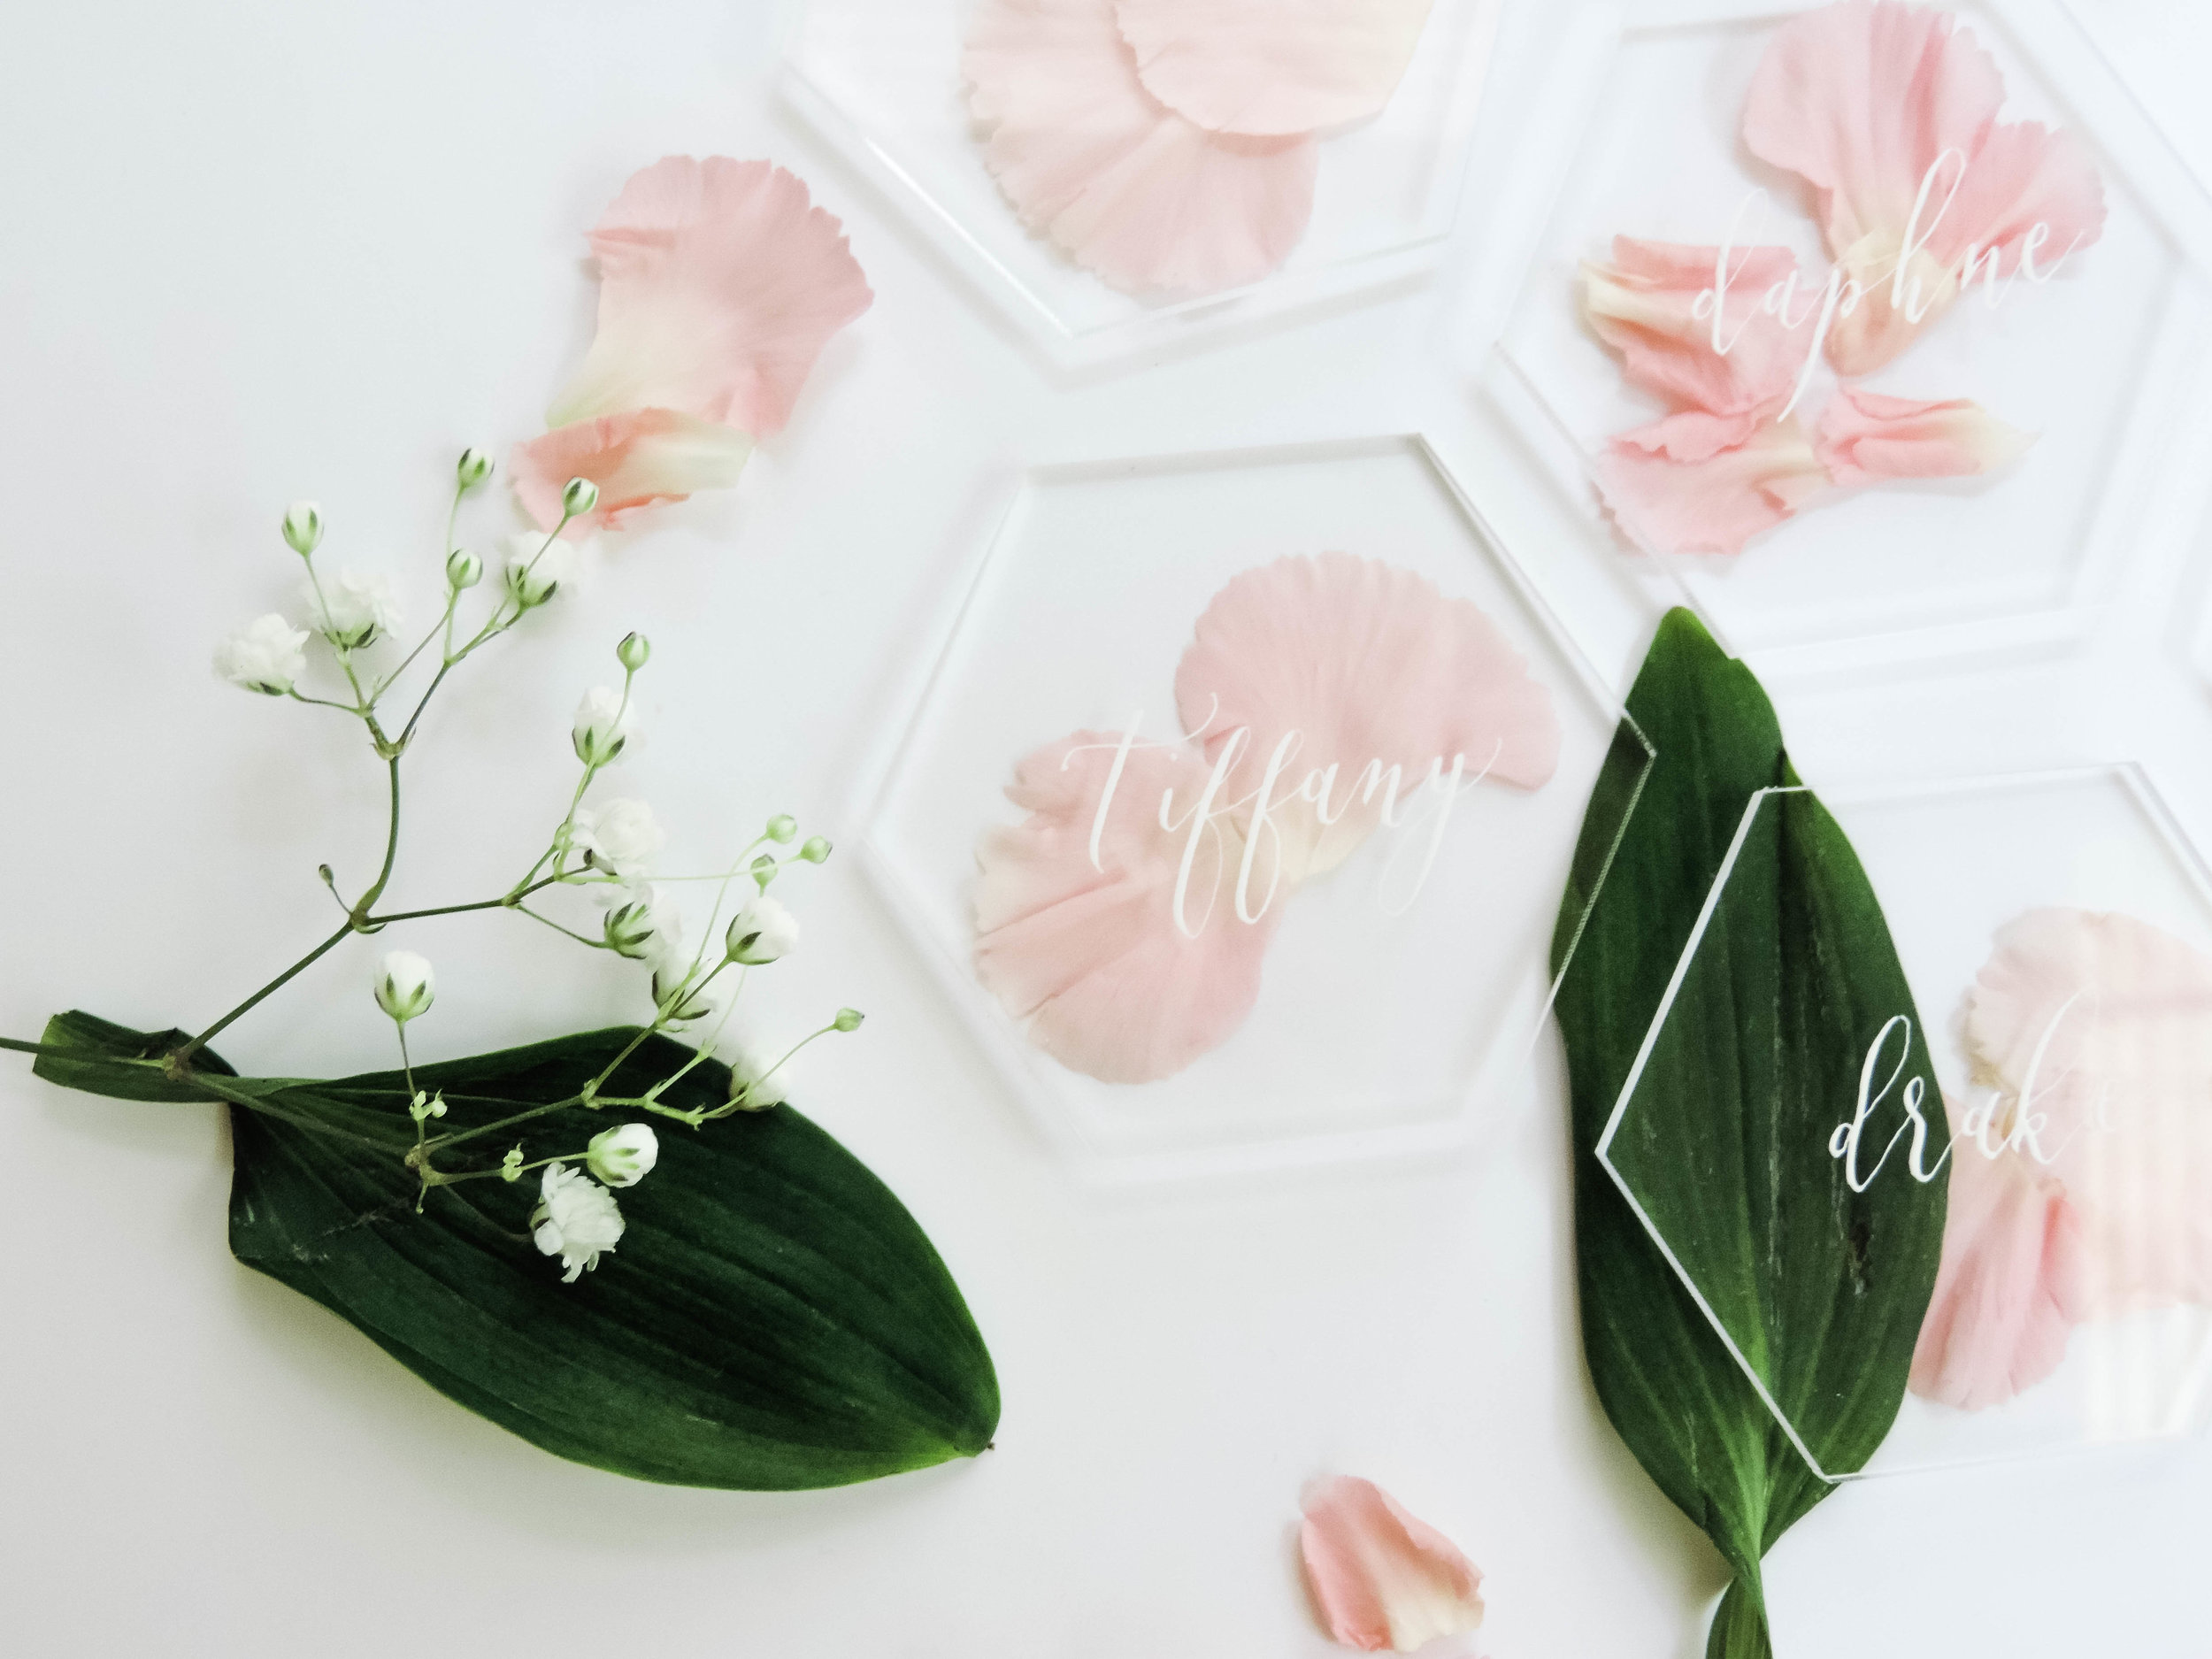 EMBELLISH - If you opt not to paint the backs these acrylic signs look stunning when placed in front of… well, anything! Just lay place cards over a bed of fresh or dried petals and greenery for a stunning display. You can also embellish acrylic sheets with gold foil, wax seals and ribbons!